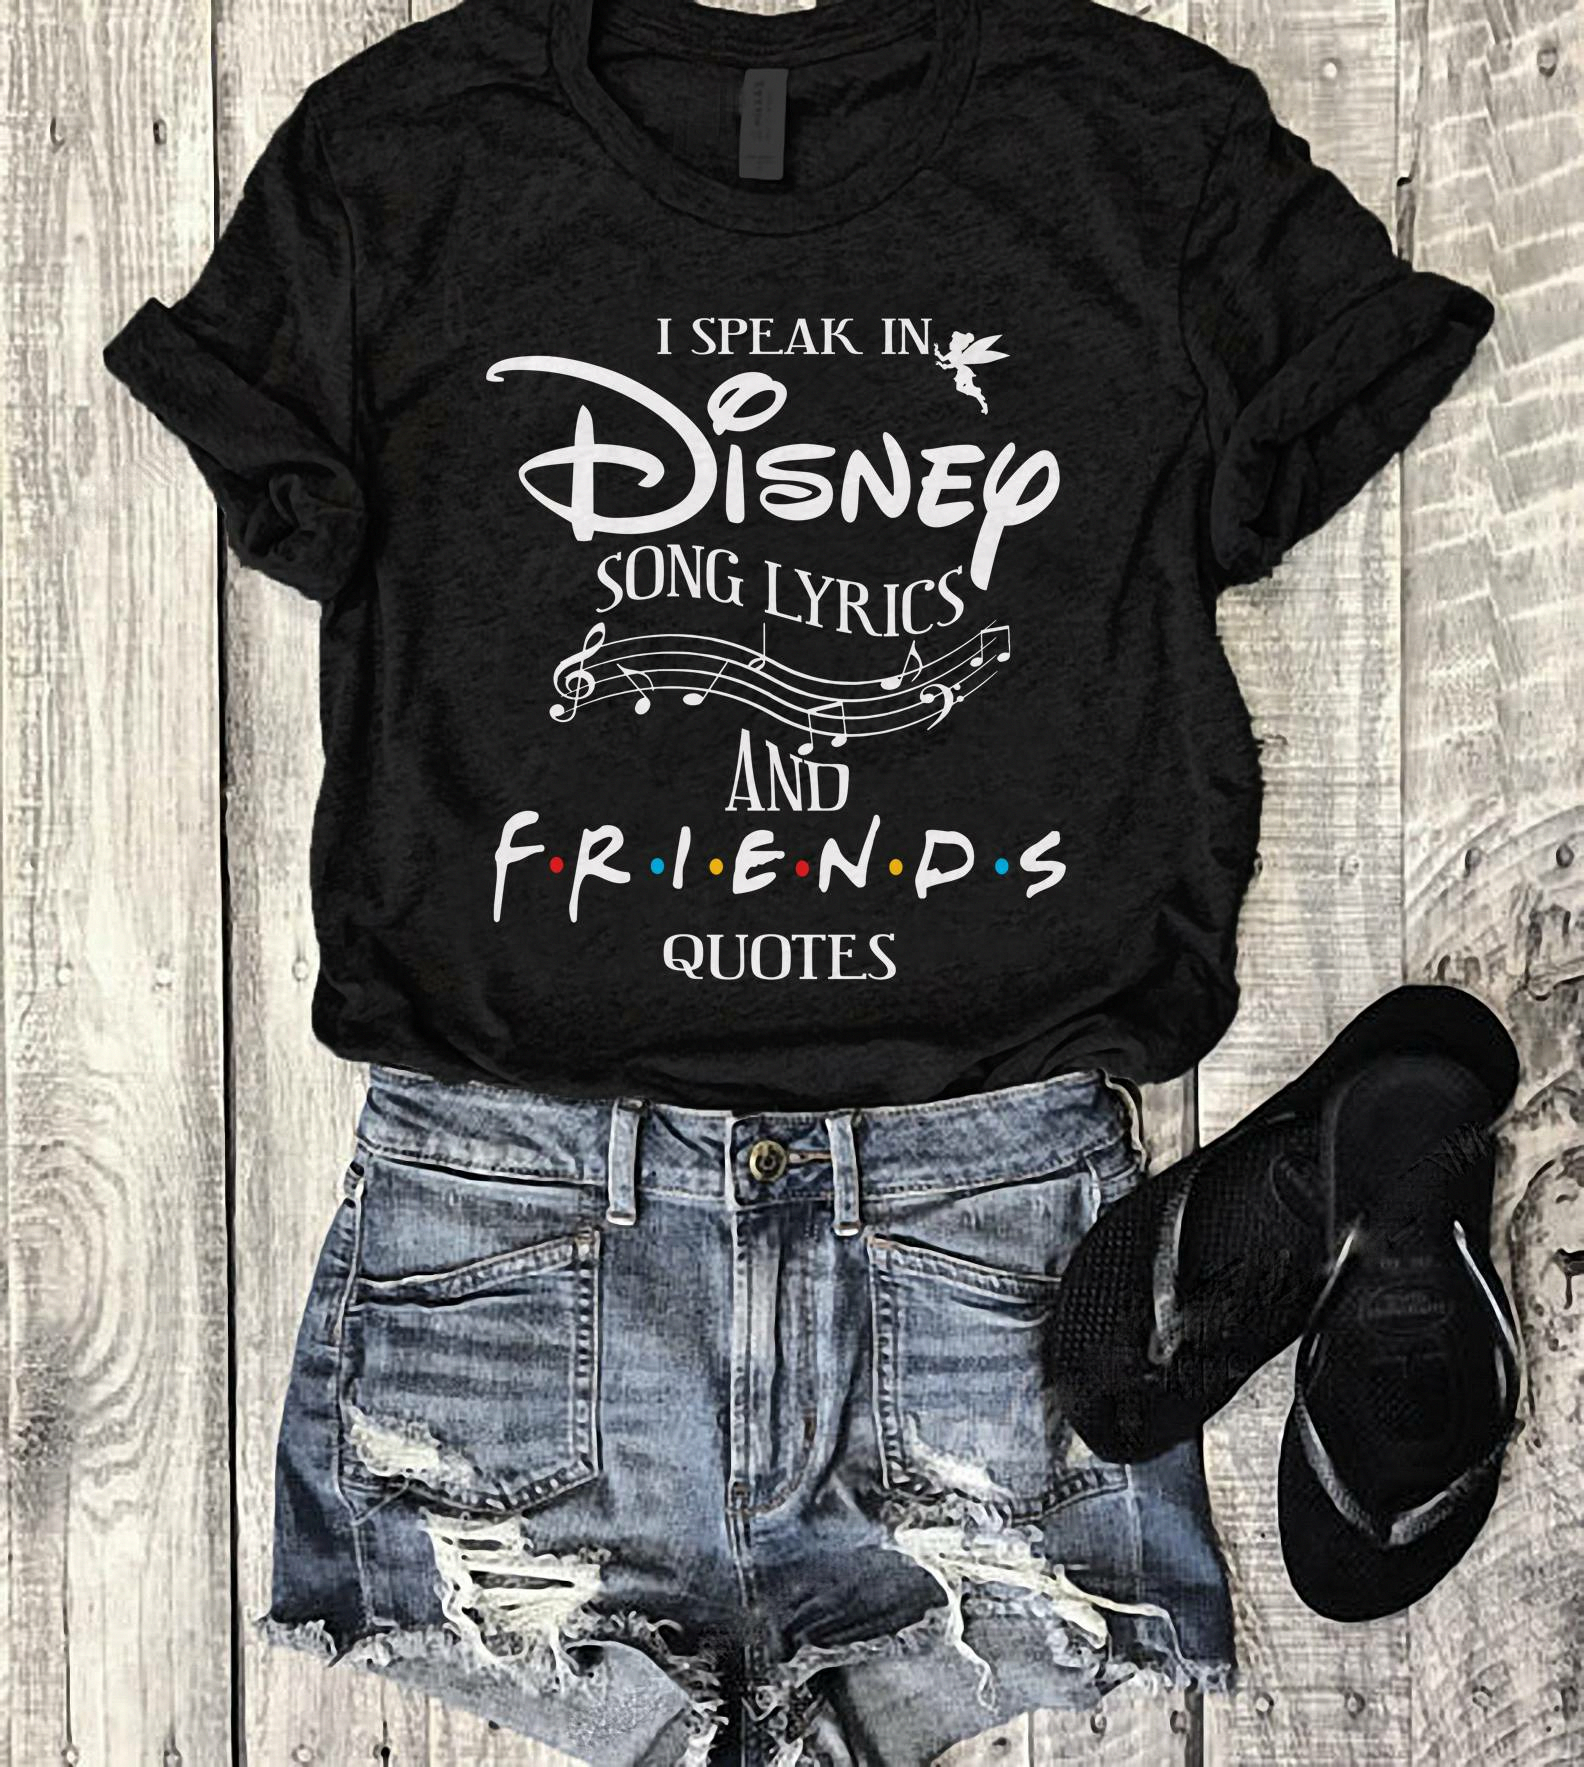 Disney and f.r.I.e.n.d.s, looks like someone just put my to fav things together